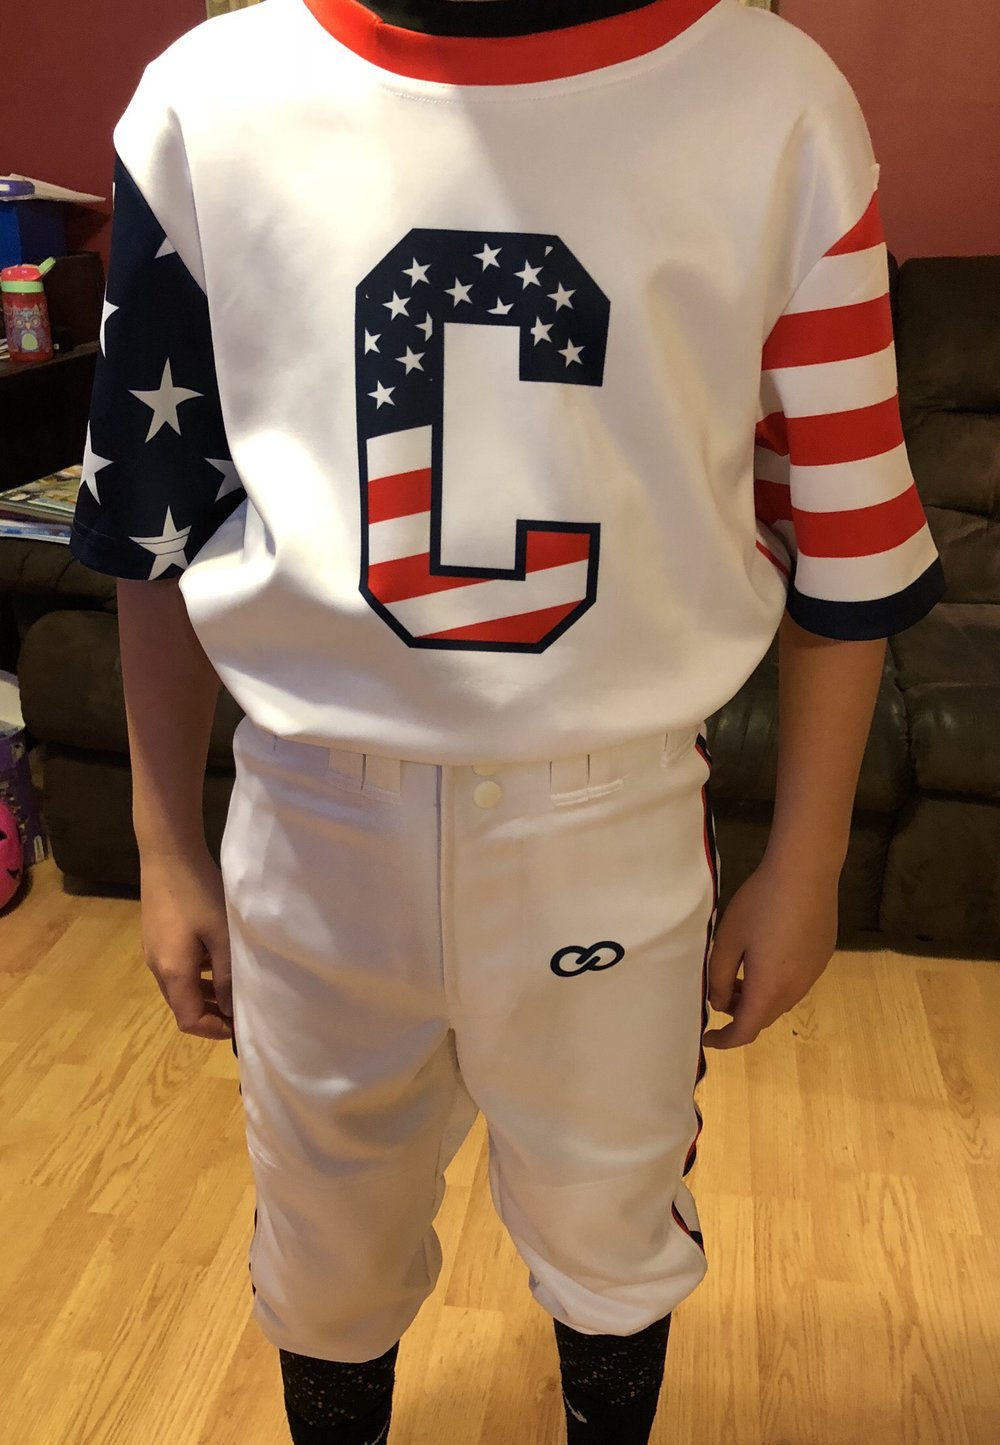 White Red Navy Blue Baseball Uniforms, Jerseys Shirts, and Pants